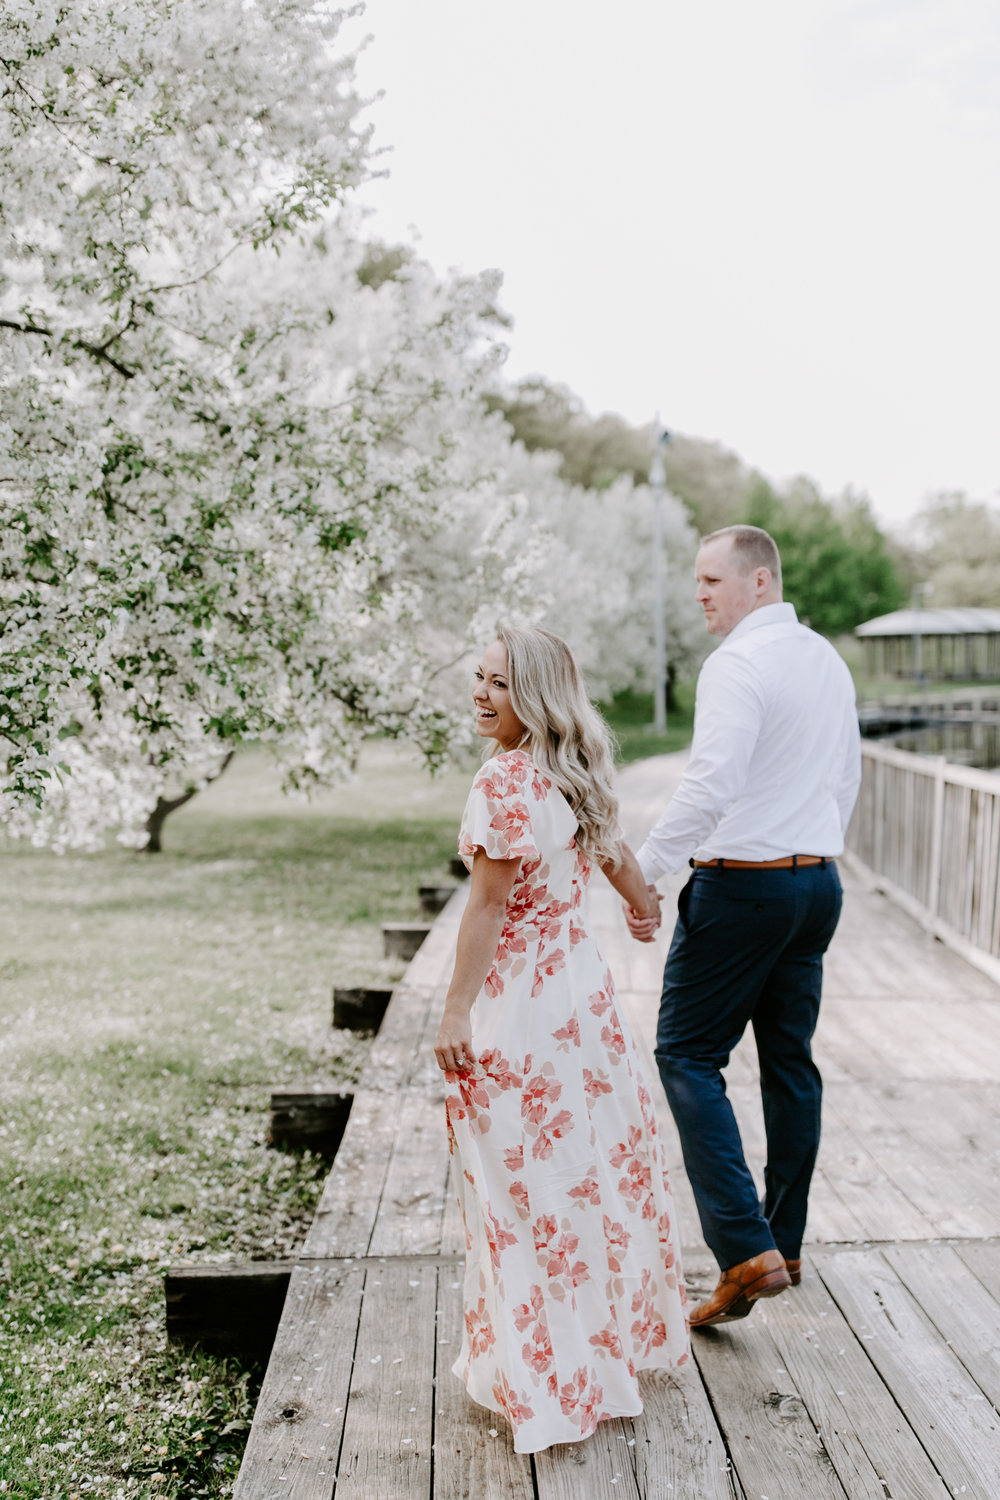 gracetphotography-wedding-photographer-adventure-bride-engagement-midwest-21.jpg